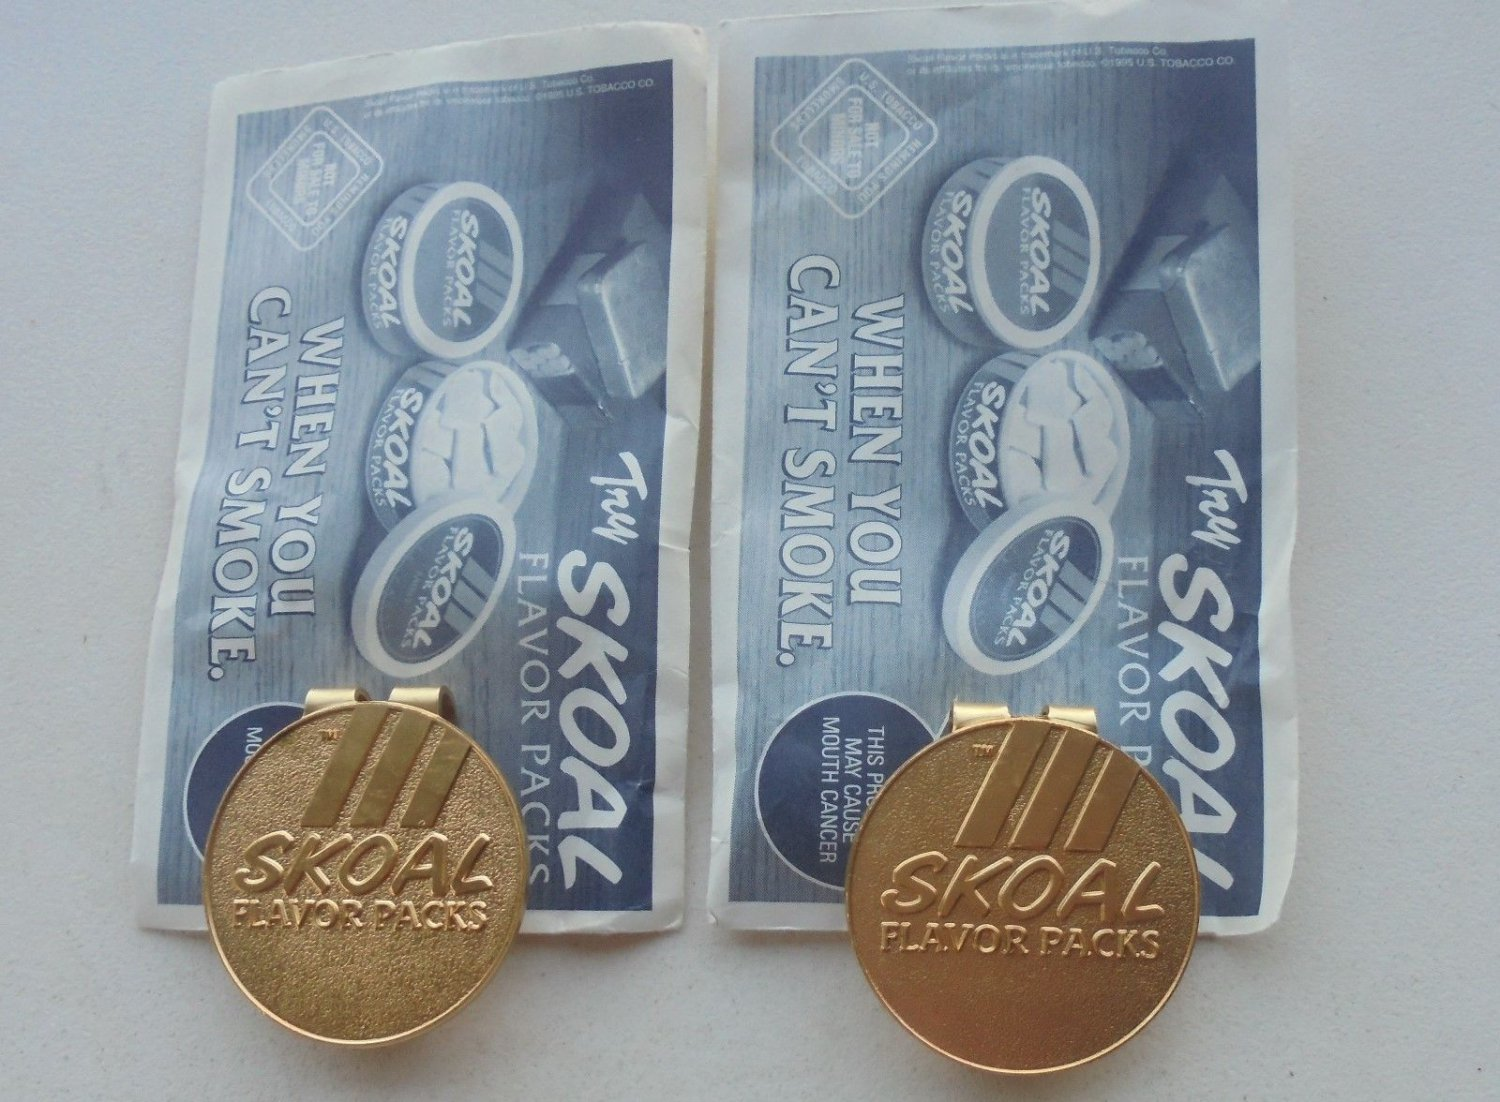 2-SKOAL FLAVOR PACKS MONEY CLIPS-NEW IN PKG.